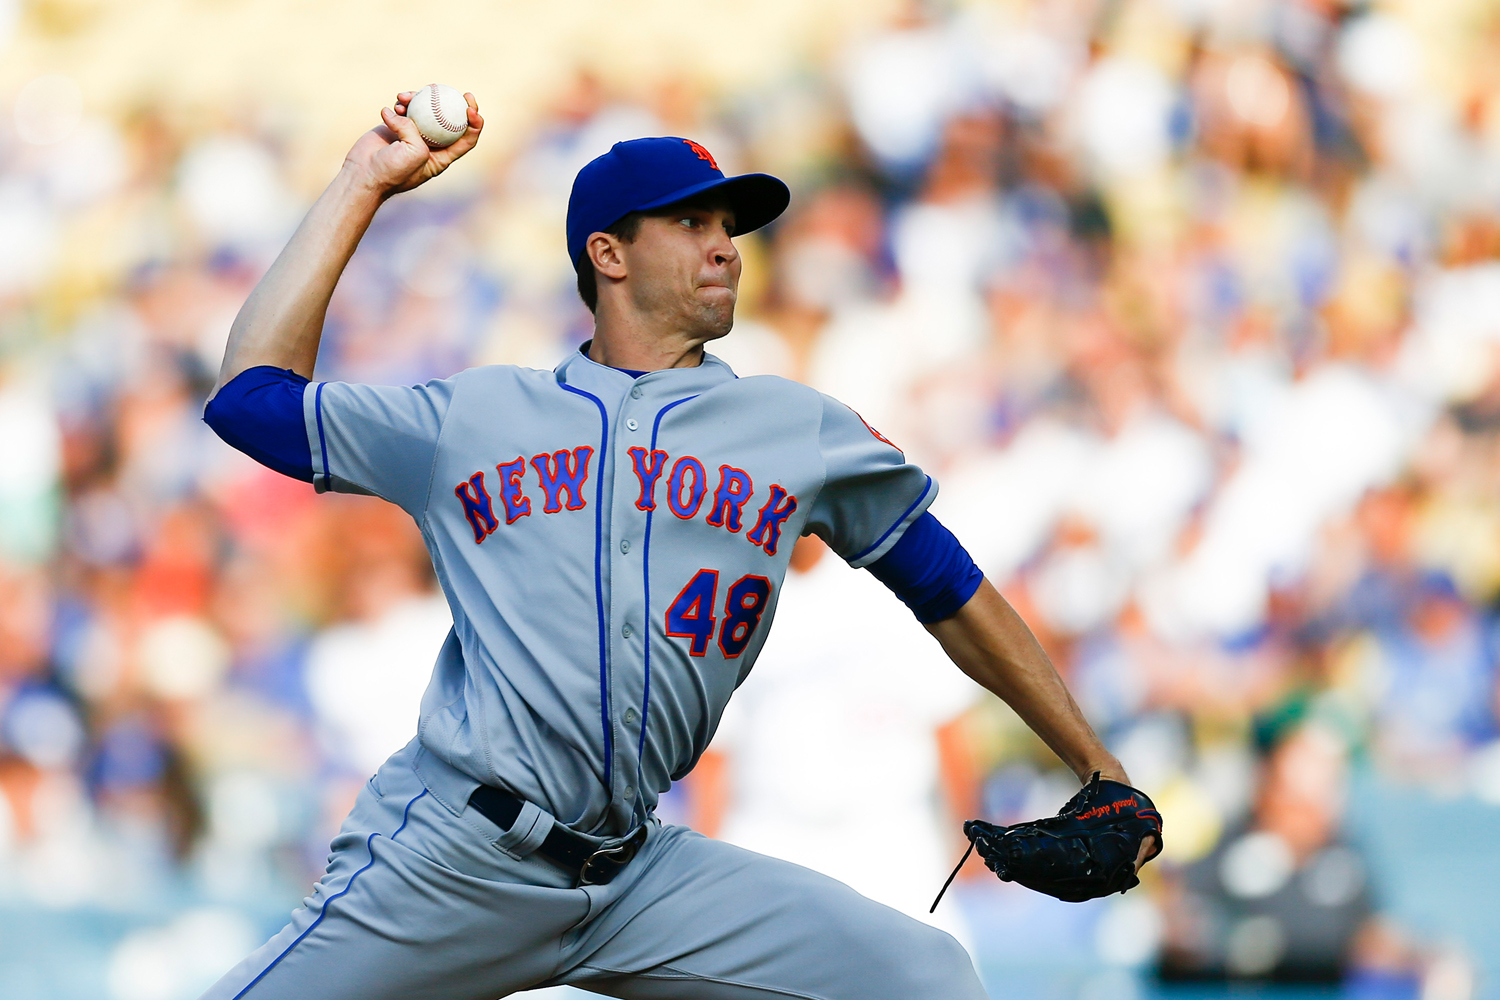 New York Mets starting pitcher Jacob deGrom (48) pitches against the Los Angeles Dodgers during a Major League Baseball game at Dodger Stadium on Sept. 3 in Los Angeles. (Kent Nishimura/Los Angeles Times/TNS)